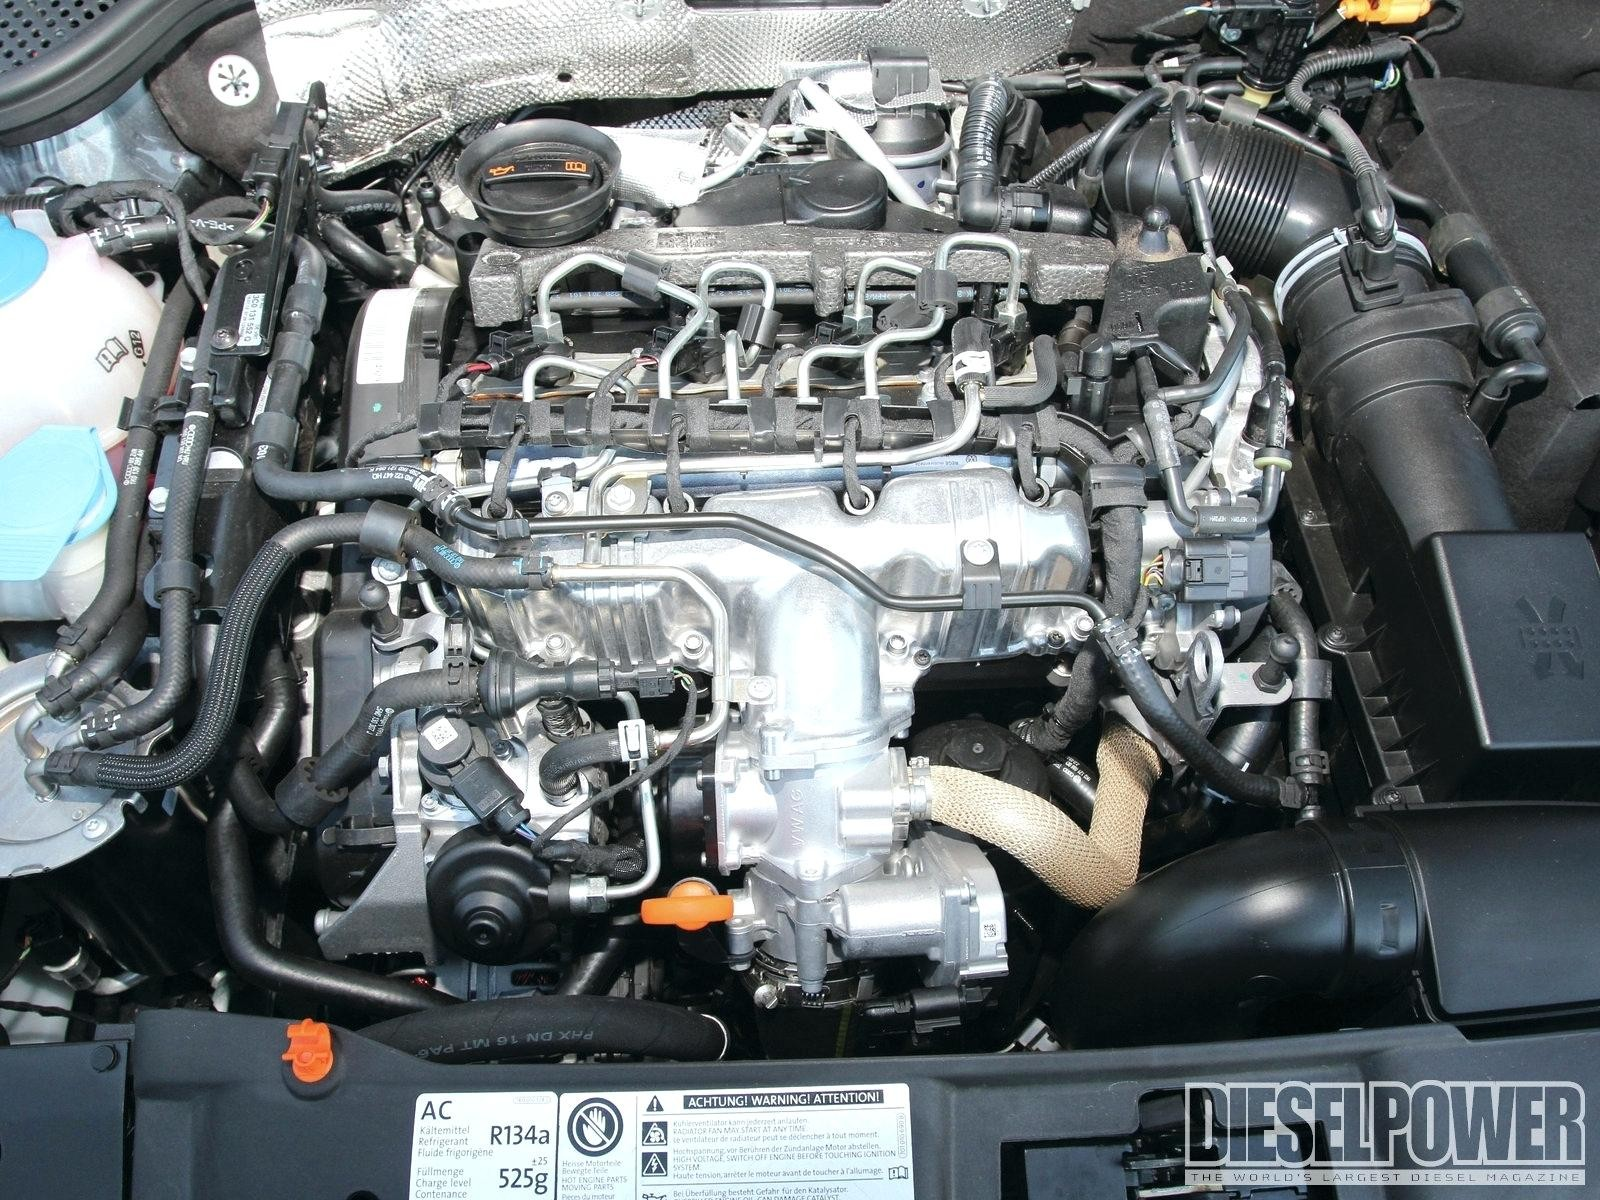 2000 Audi A6 Engine Diagram Audi A6 Engine Bay Diagram Stage 3 Page forums Wiring 2003 30 Timing Of 2000 Audi A6 Engine Diagram